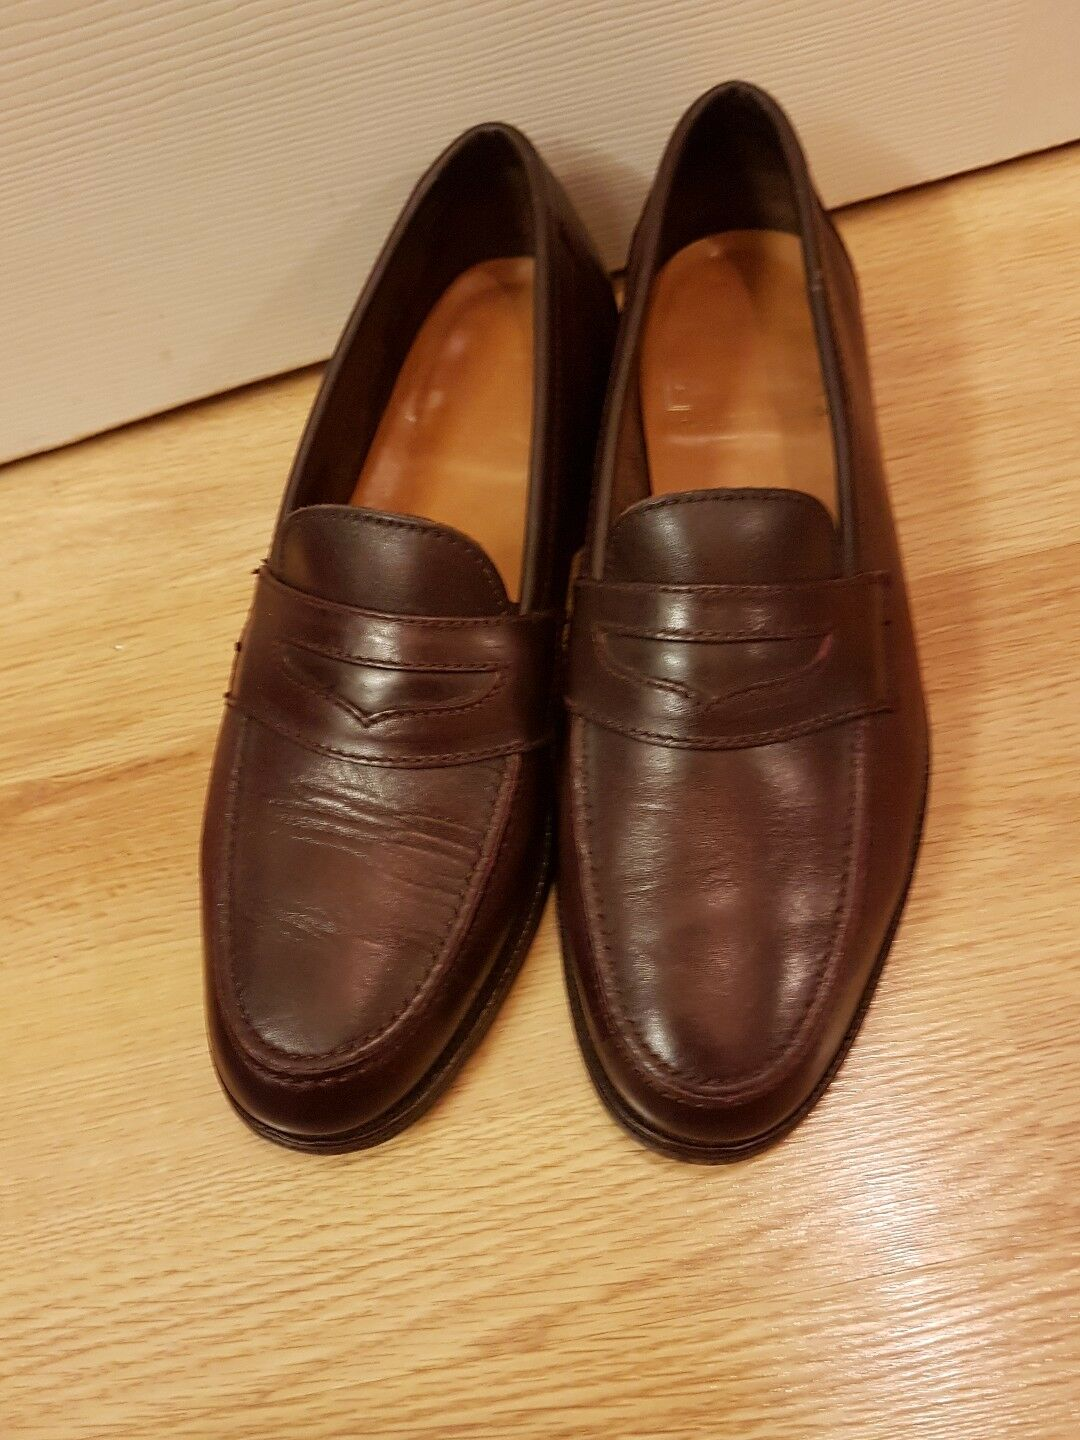 SANDRES MEN'S  LOAFERS  MADE IN ENGLAND  SIZR 8